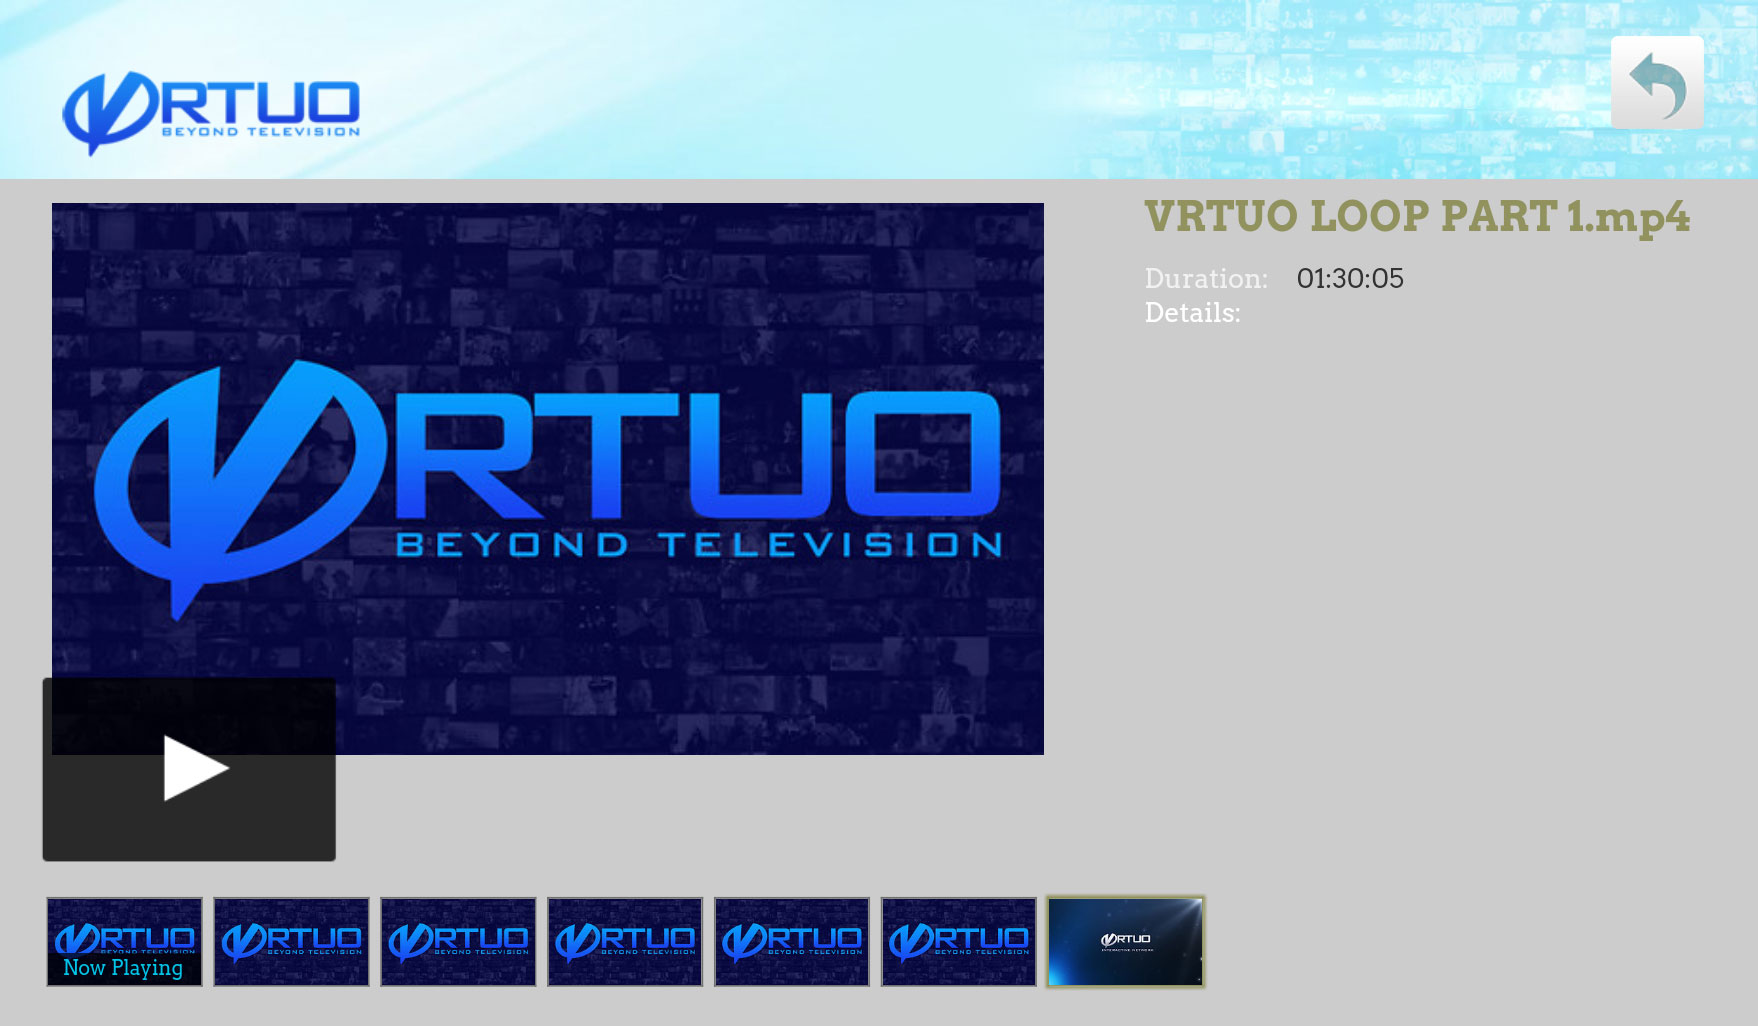 VrTuo Interactive Screenshot 002